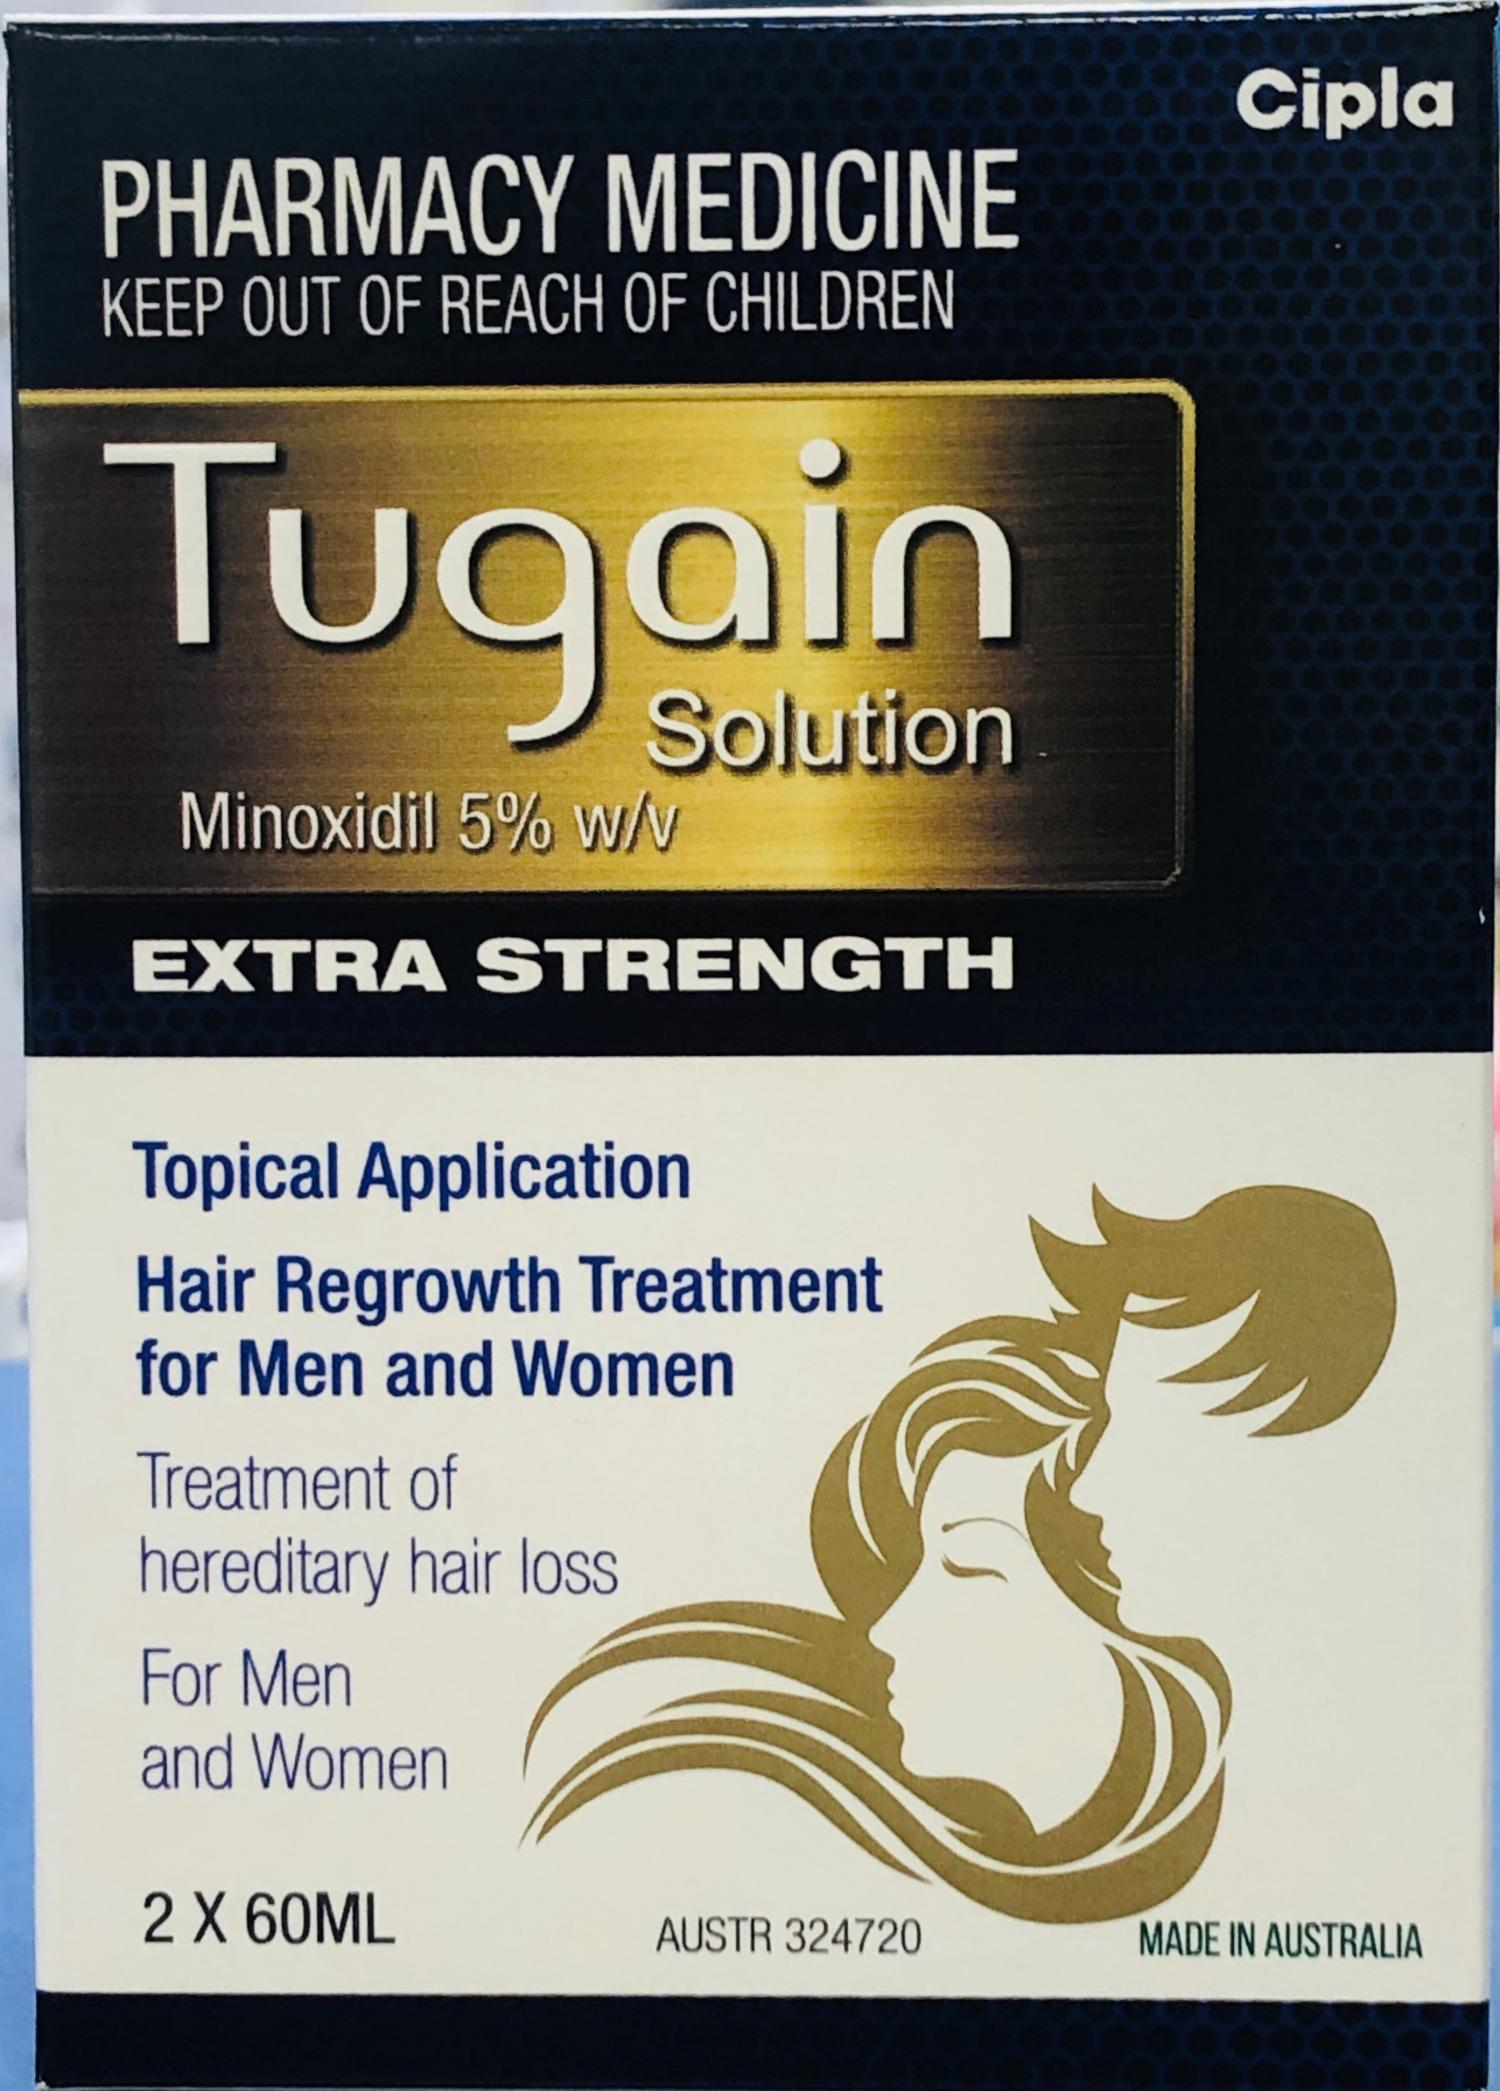 Thumbnail for Tugain Solution minoxidil 5% Extra Strength 2 x 60 mL